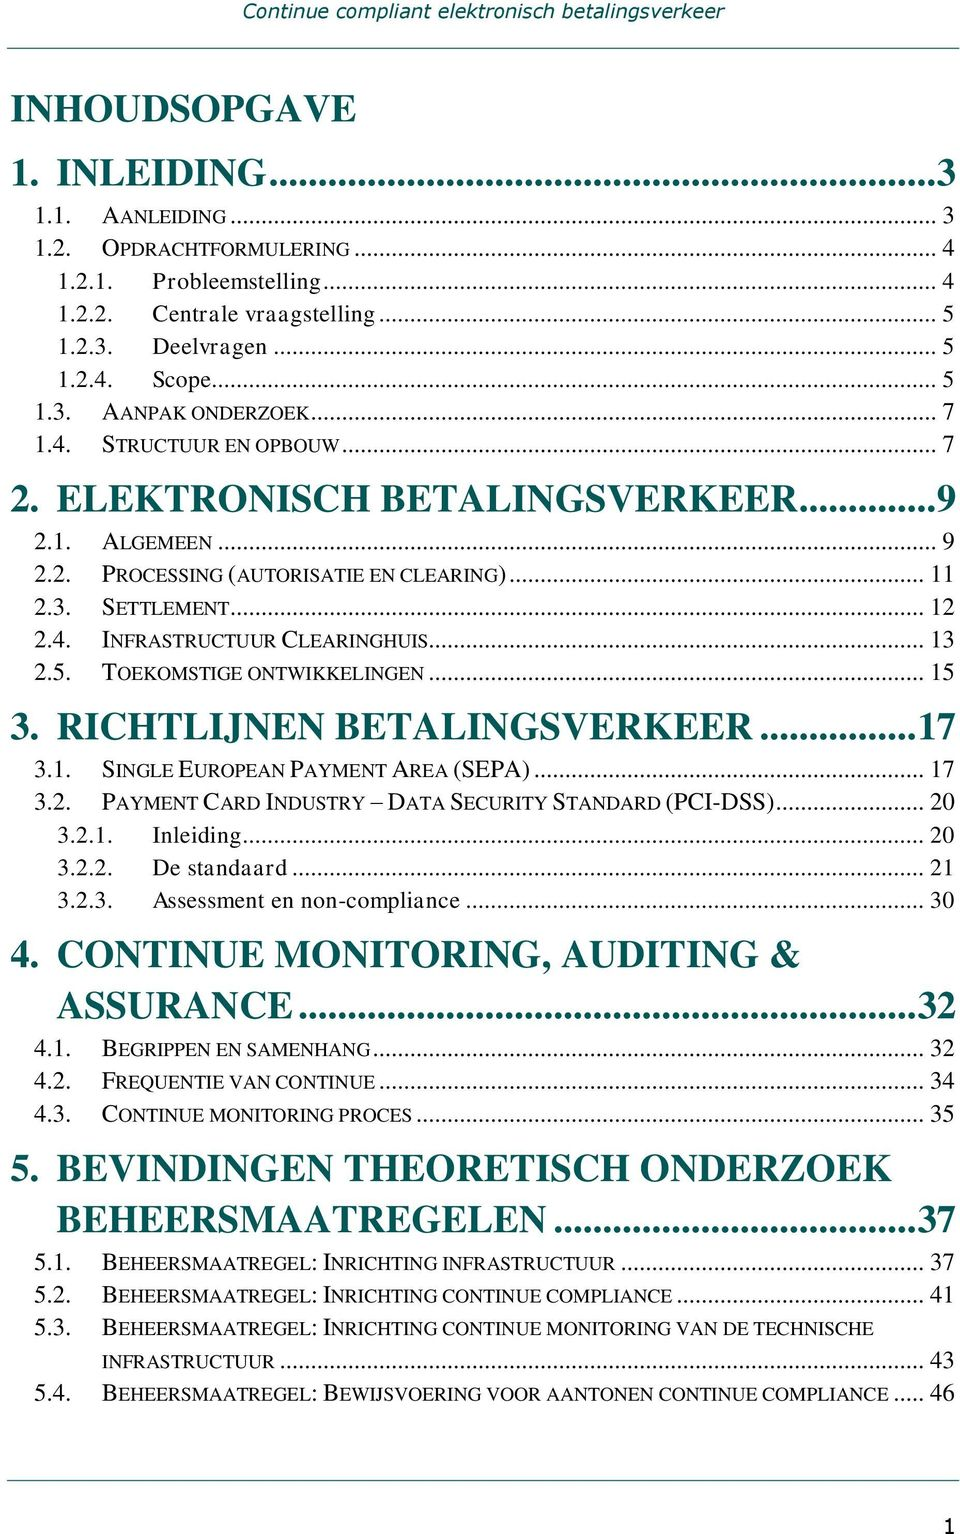 .. 13 2.5. TOEKOMSTIGE ONTWIKKELINGEN... 15 3. RICHTLIJNEN BETALINGSVERKEER... 17 3.1. SINGLE EUROPEAN PAYMENT AREA (SEPA)... 17 3.2. PAYMENT CARD INDUSTRY DATA SECURITY STANDARD (PCI-DSS)... 20 3.2.1. Inleiding.